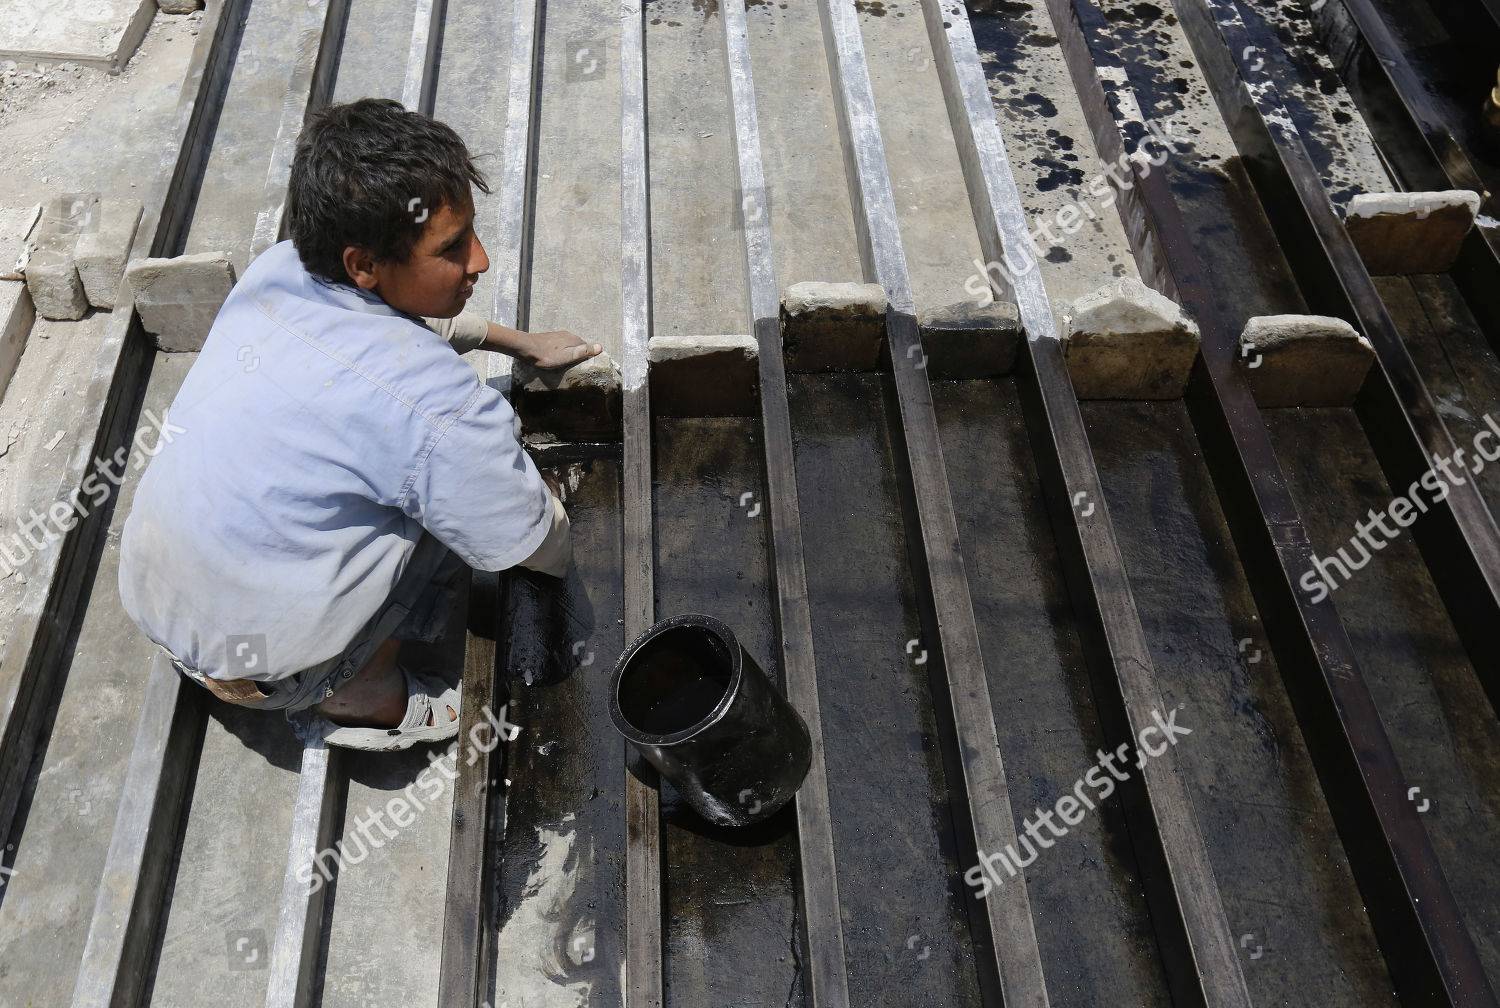 young Yemeni laborer cleans tiles moulds tile Editorial Stock Photo